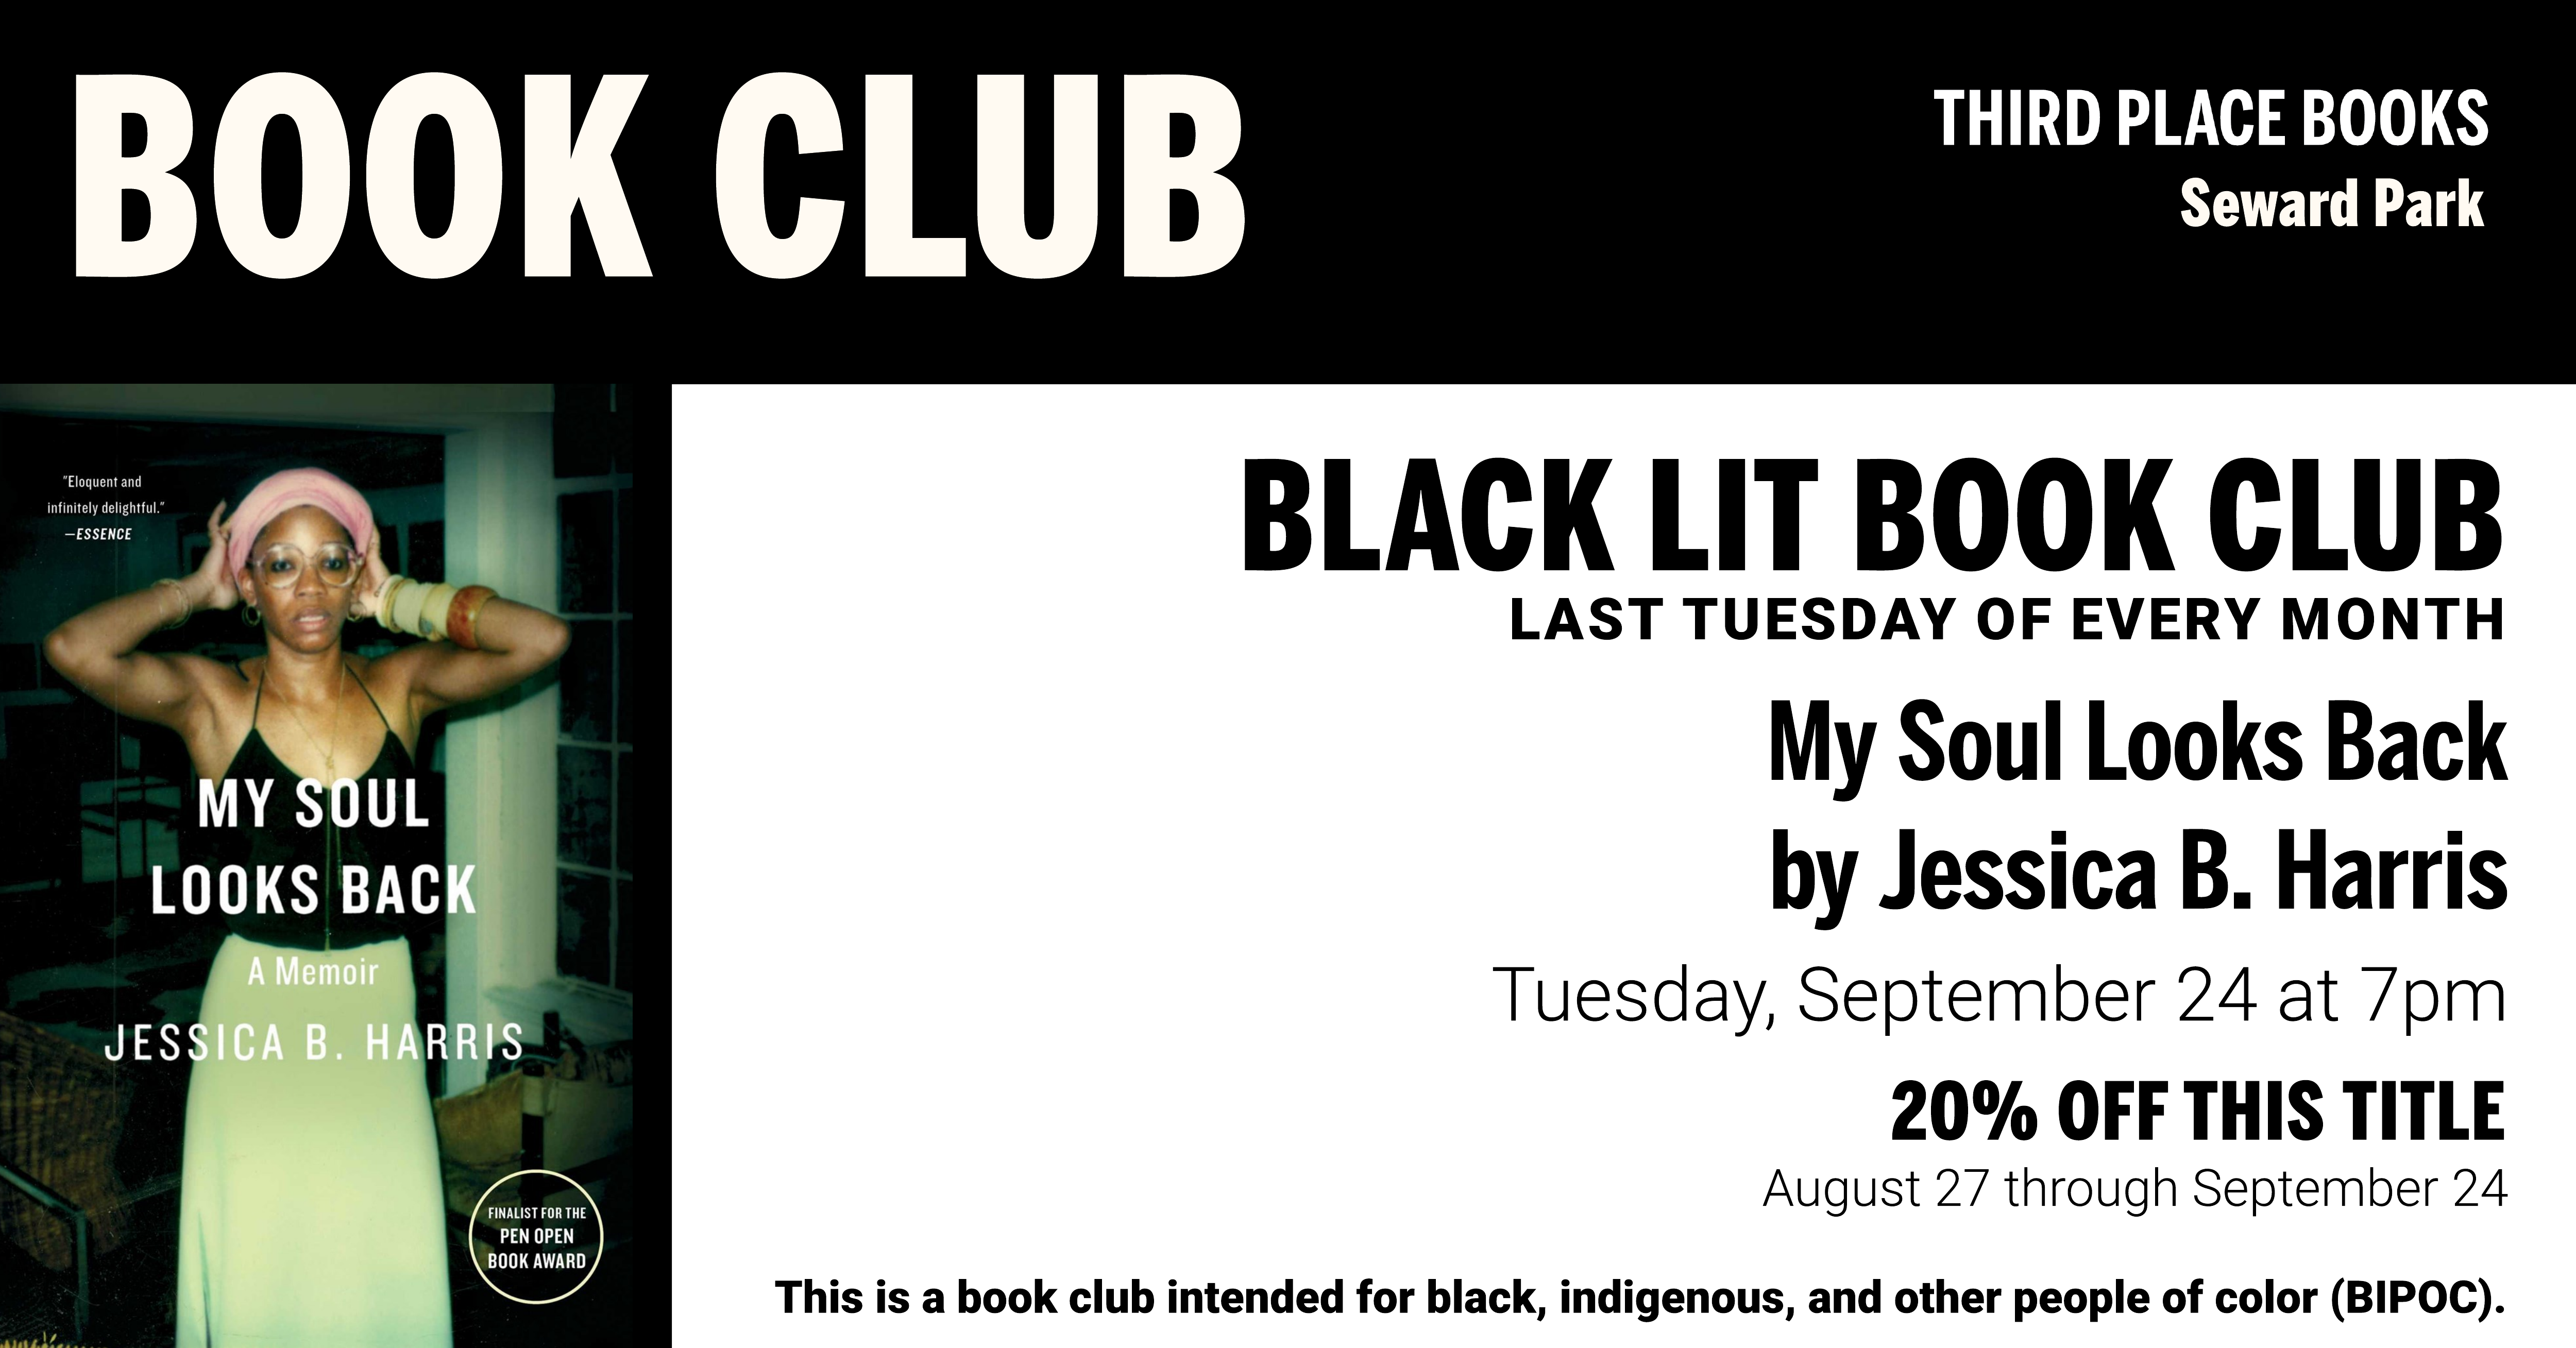 Black Lit Book Club discussing My Soul Looks Back by Jessica B. Harris on Tuesday, September 24 at 7pm